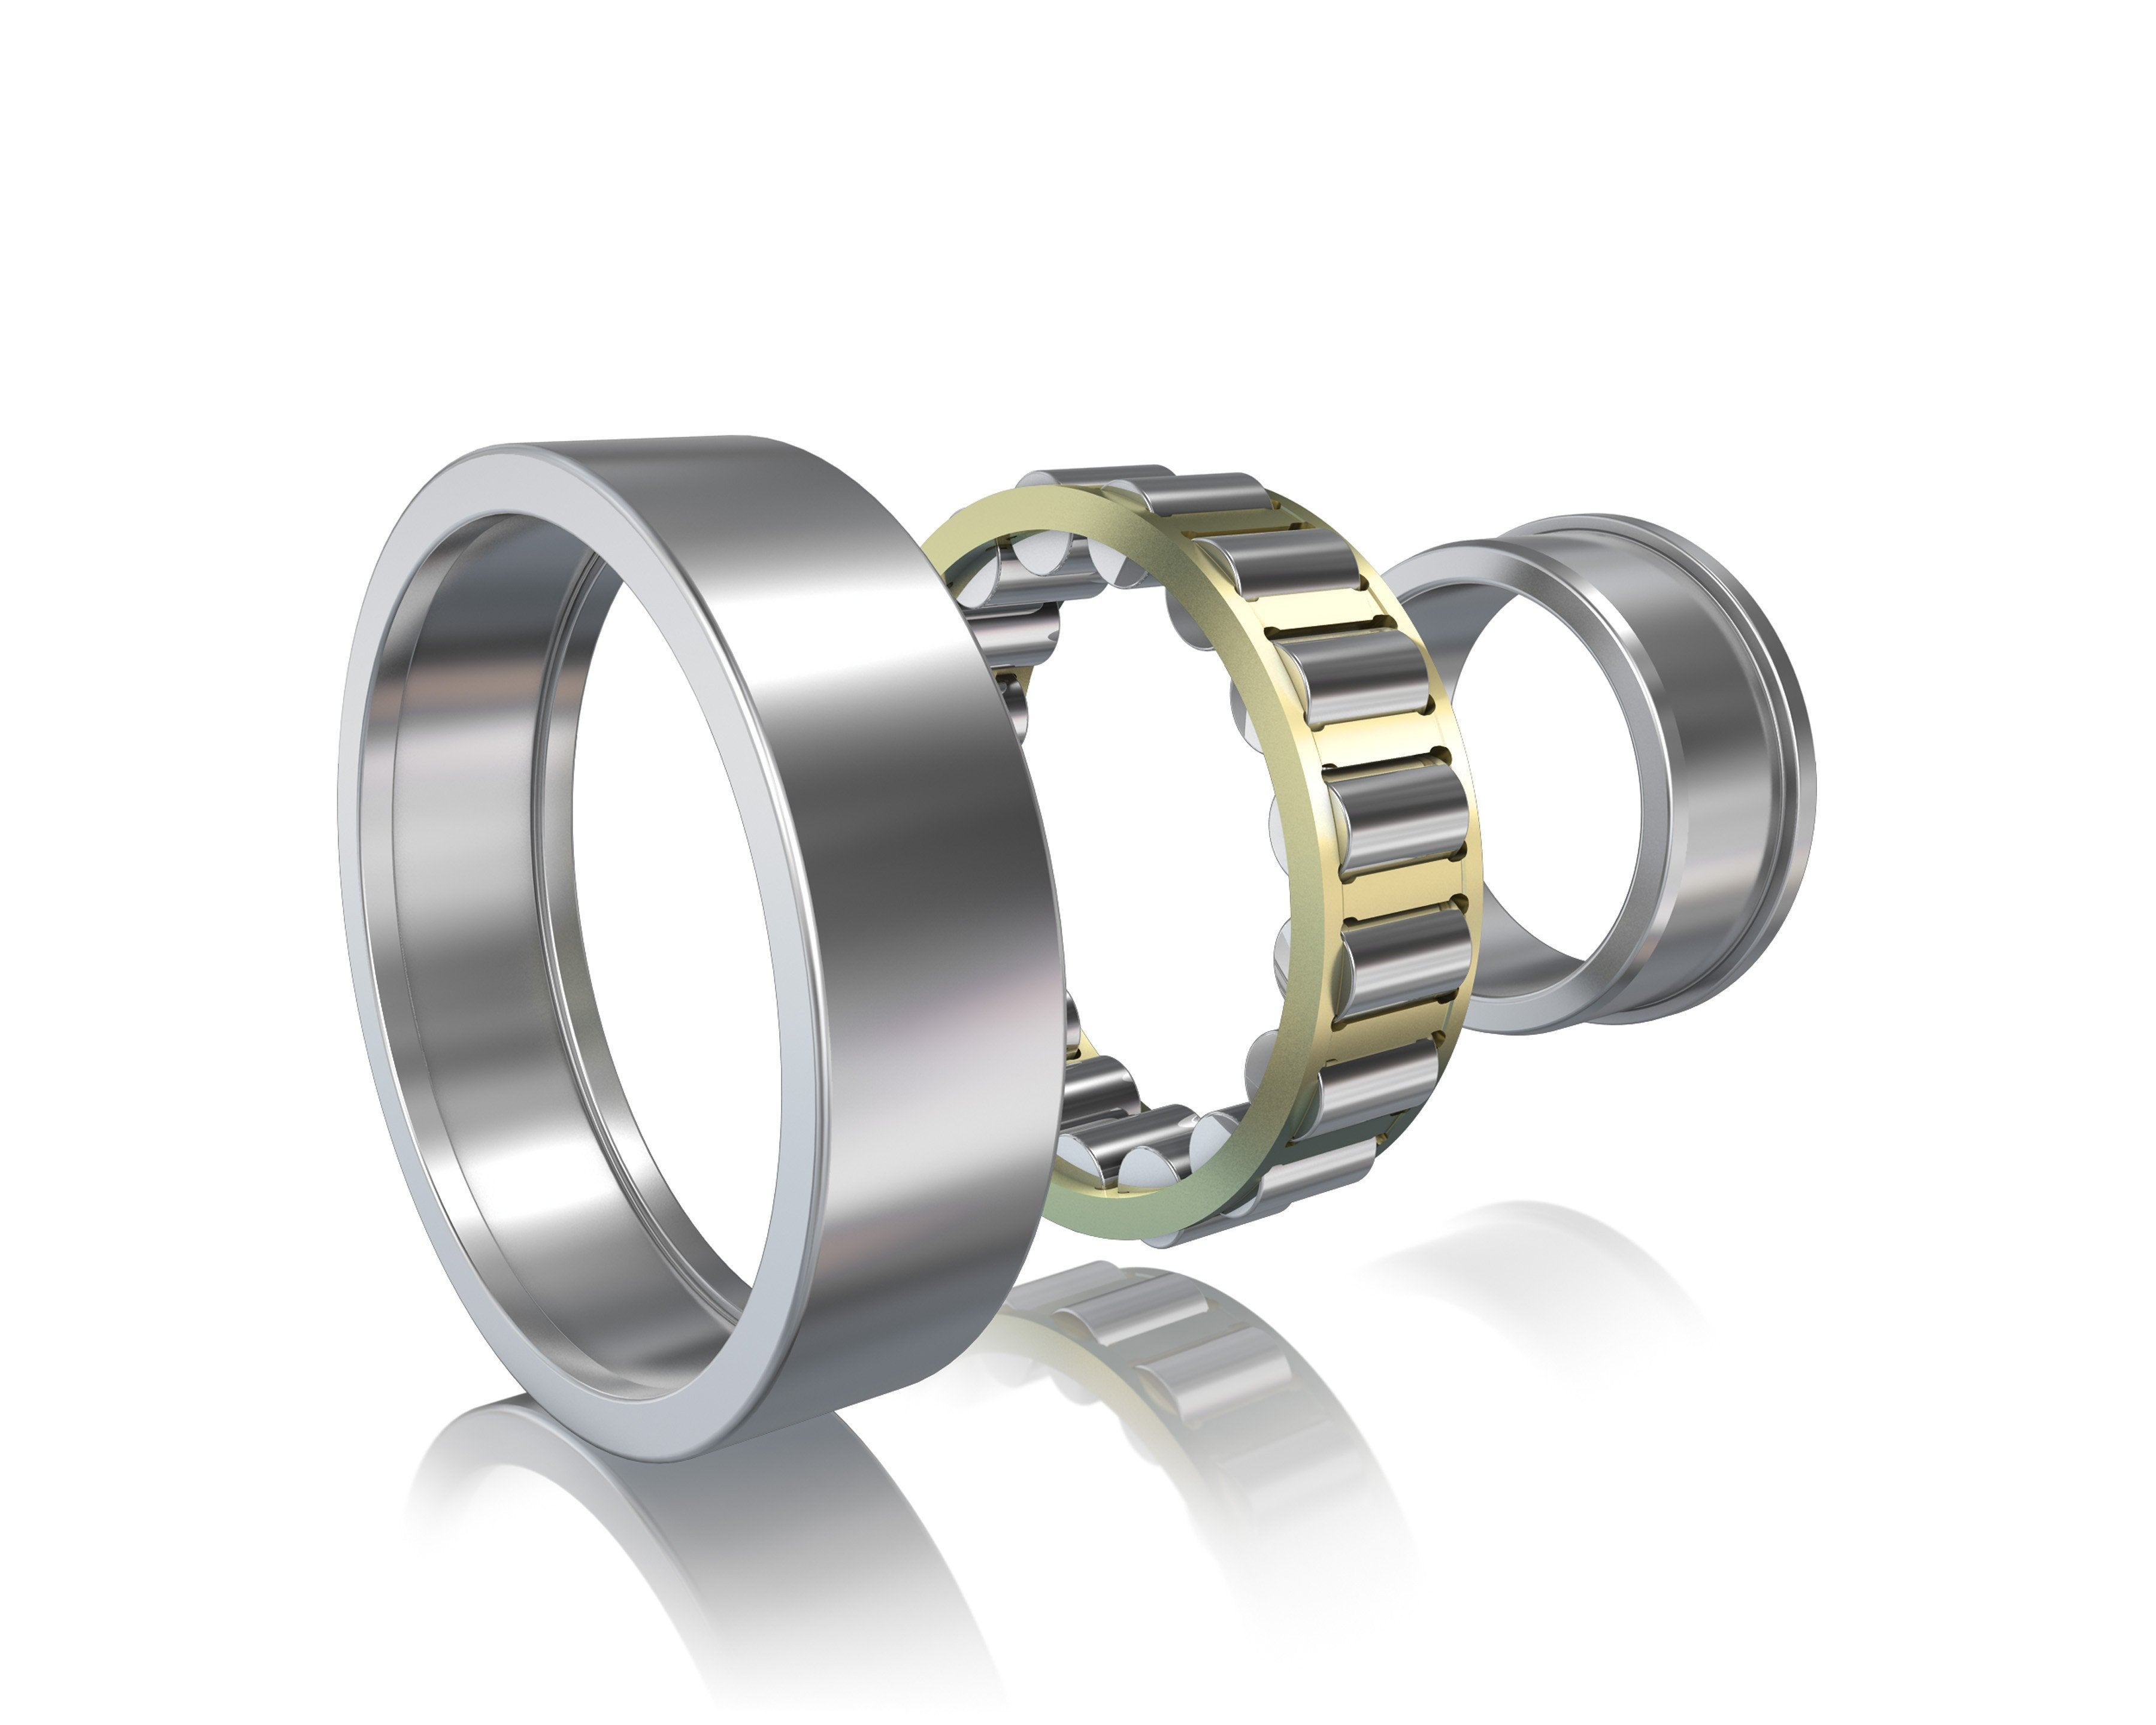 NU2320-ECJ-SKF, Bearings, Cylindrical roller bearings